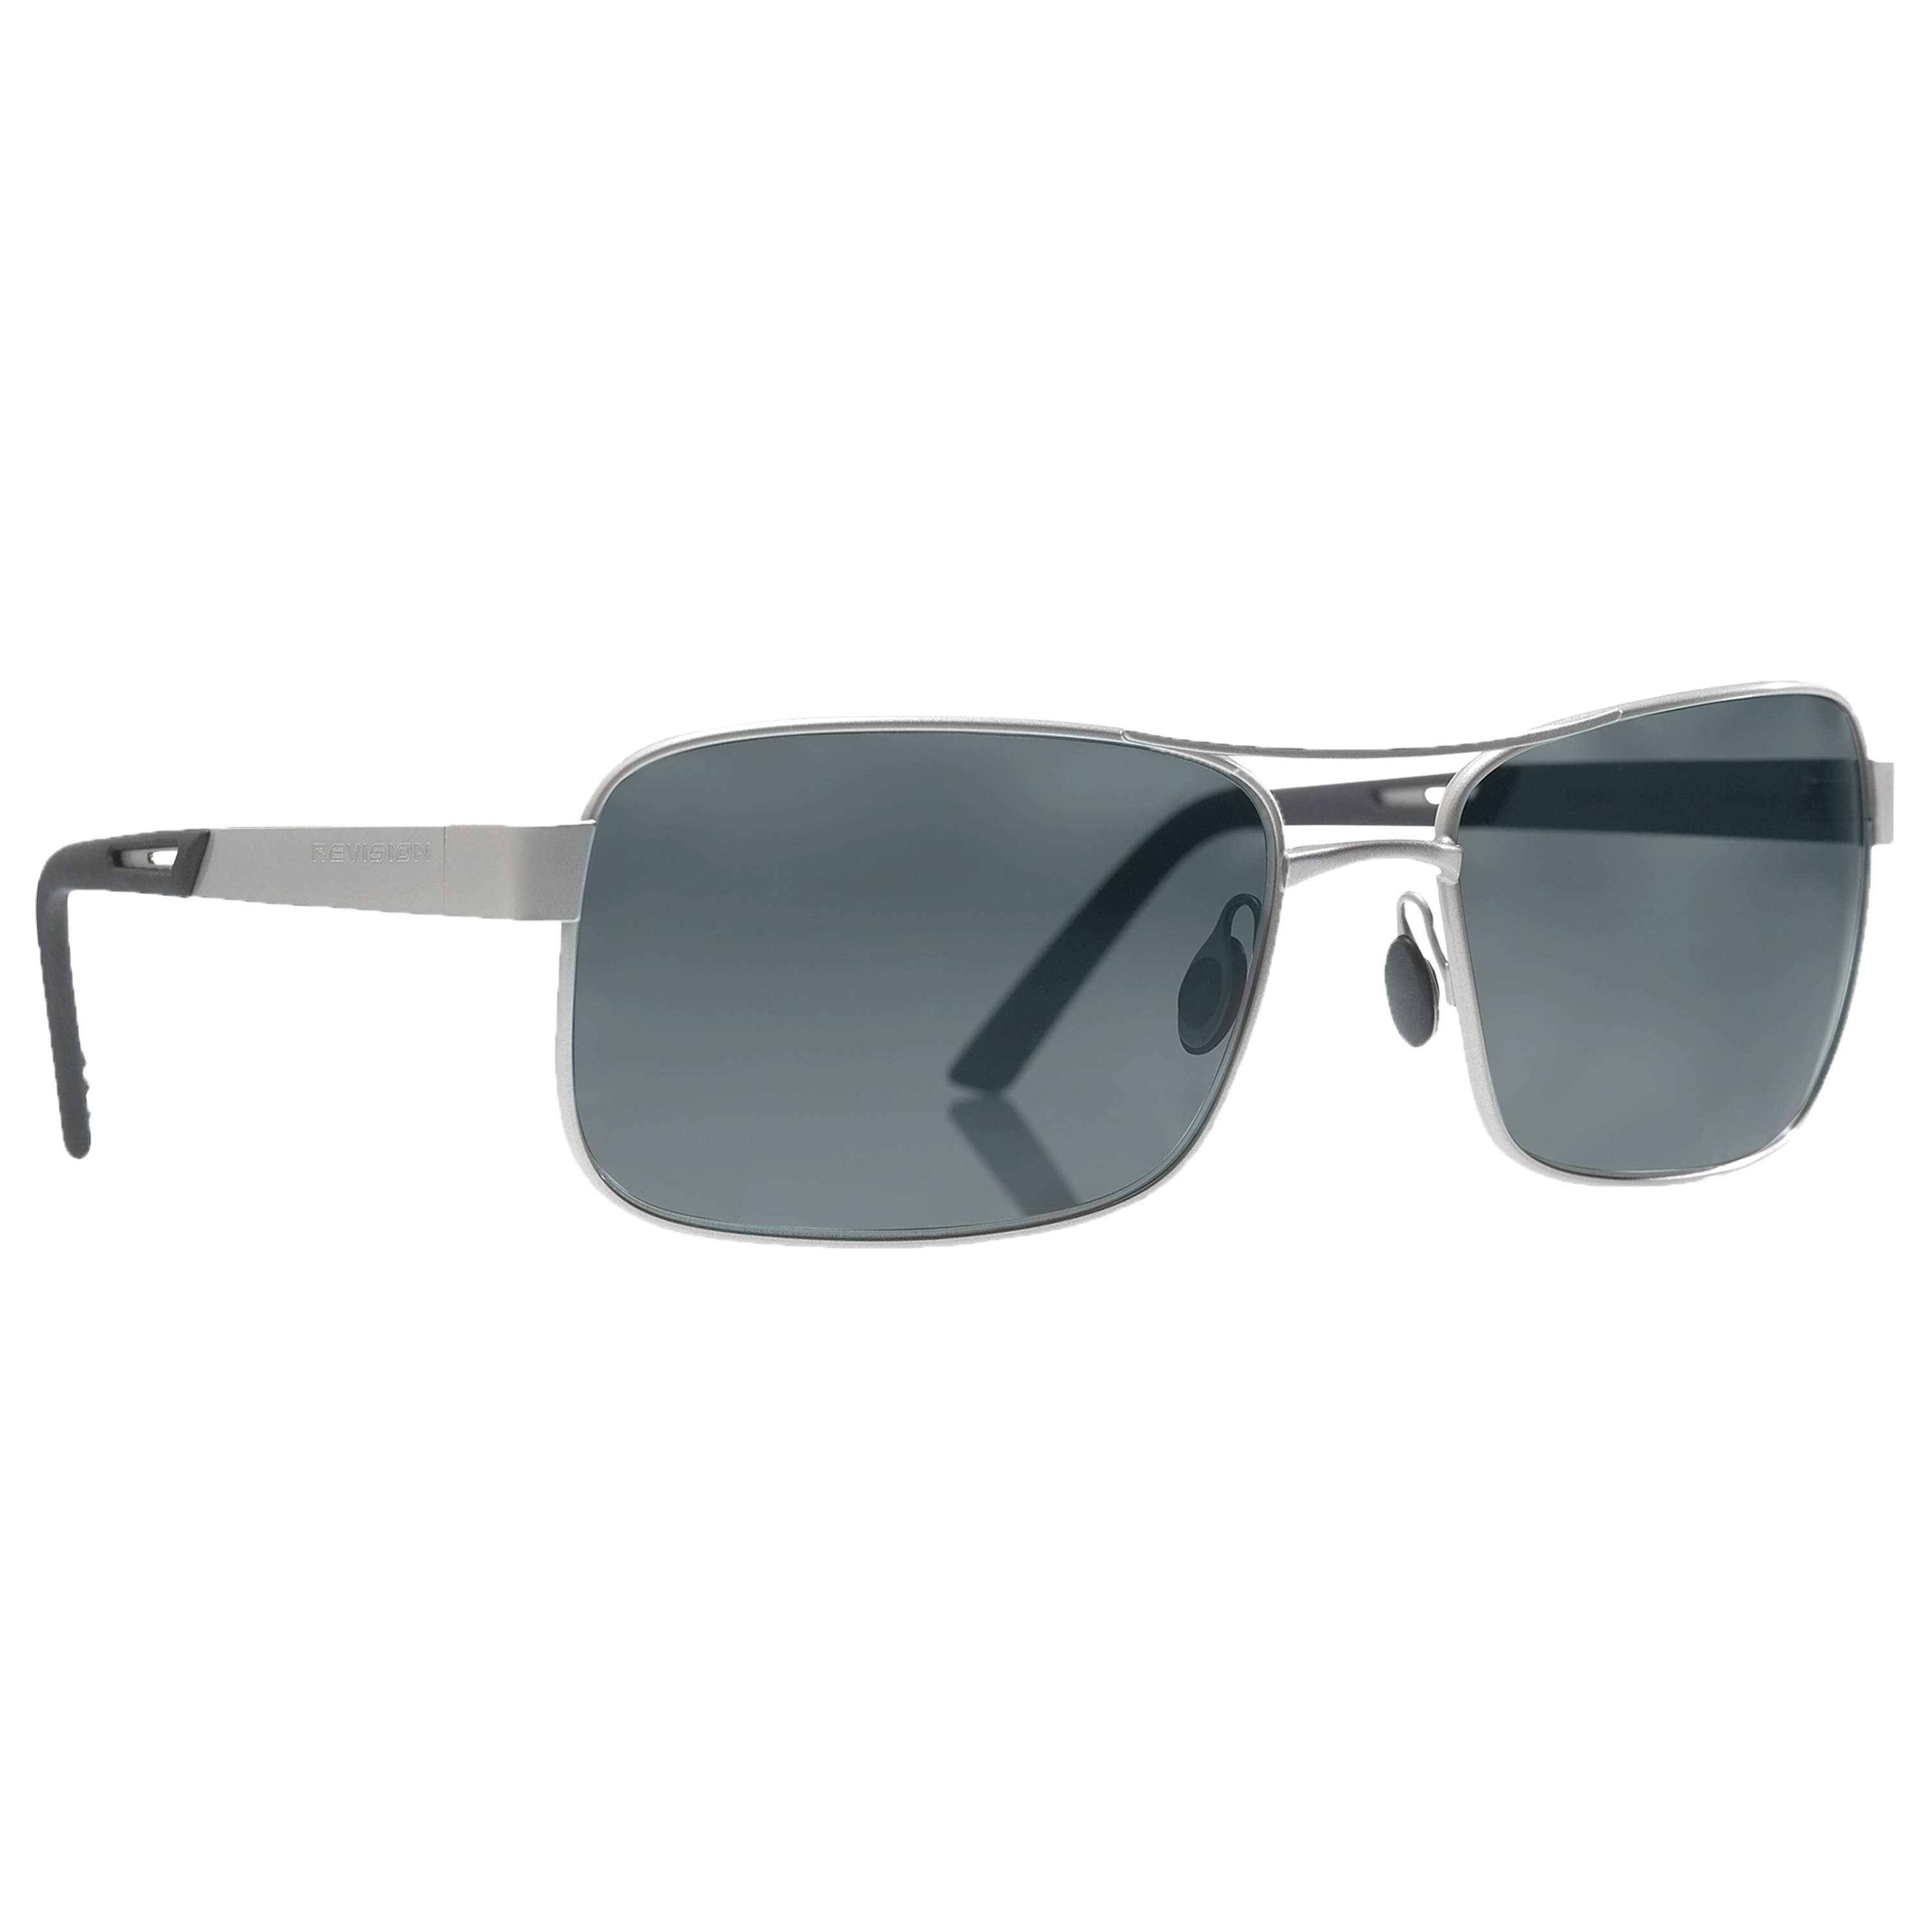 Revision Brille Deltawing polarized